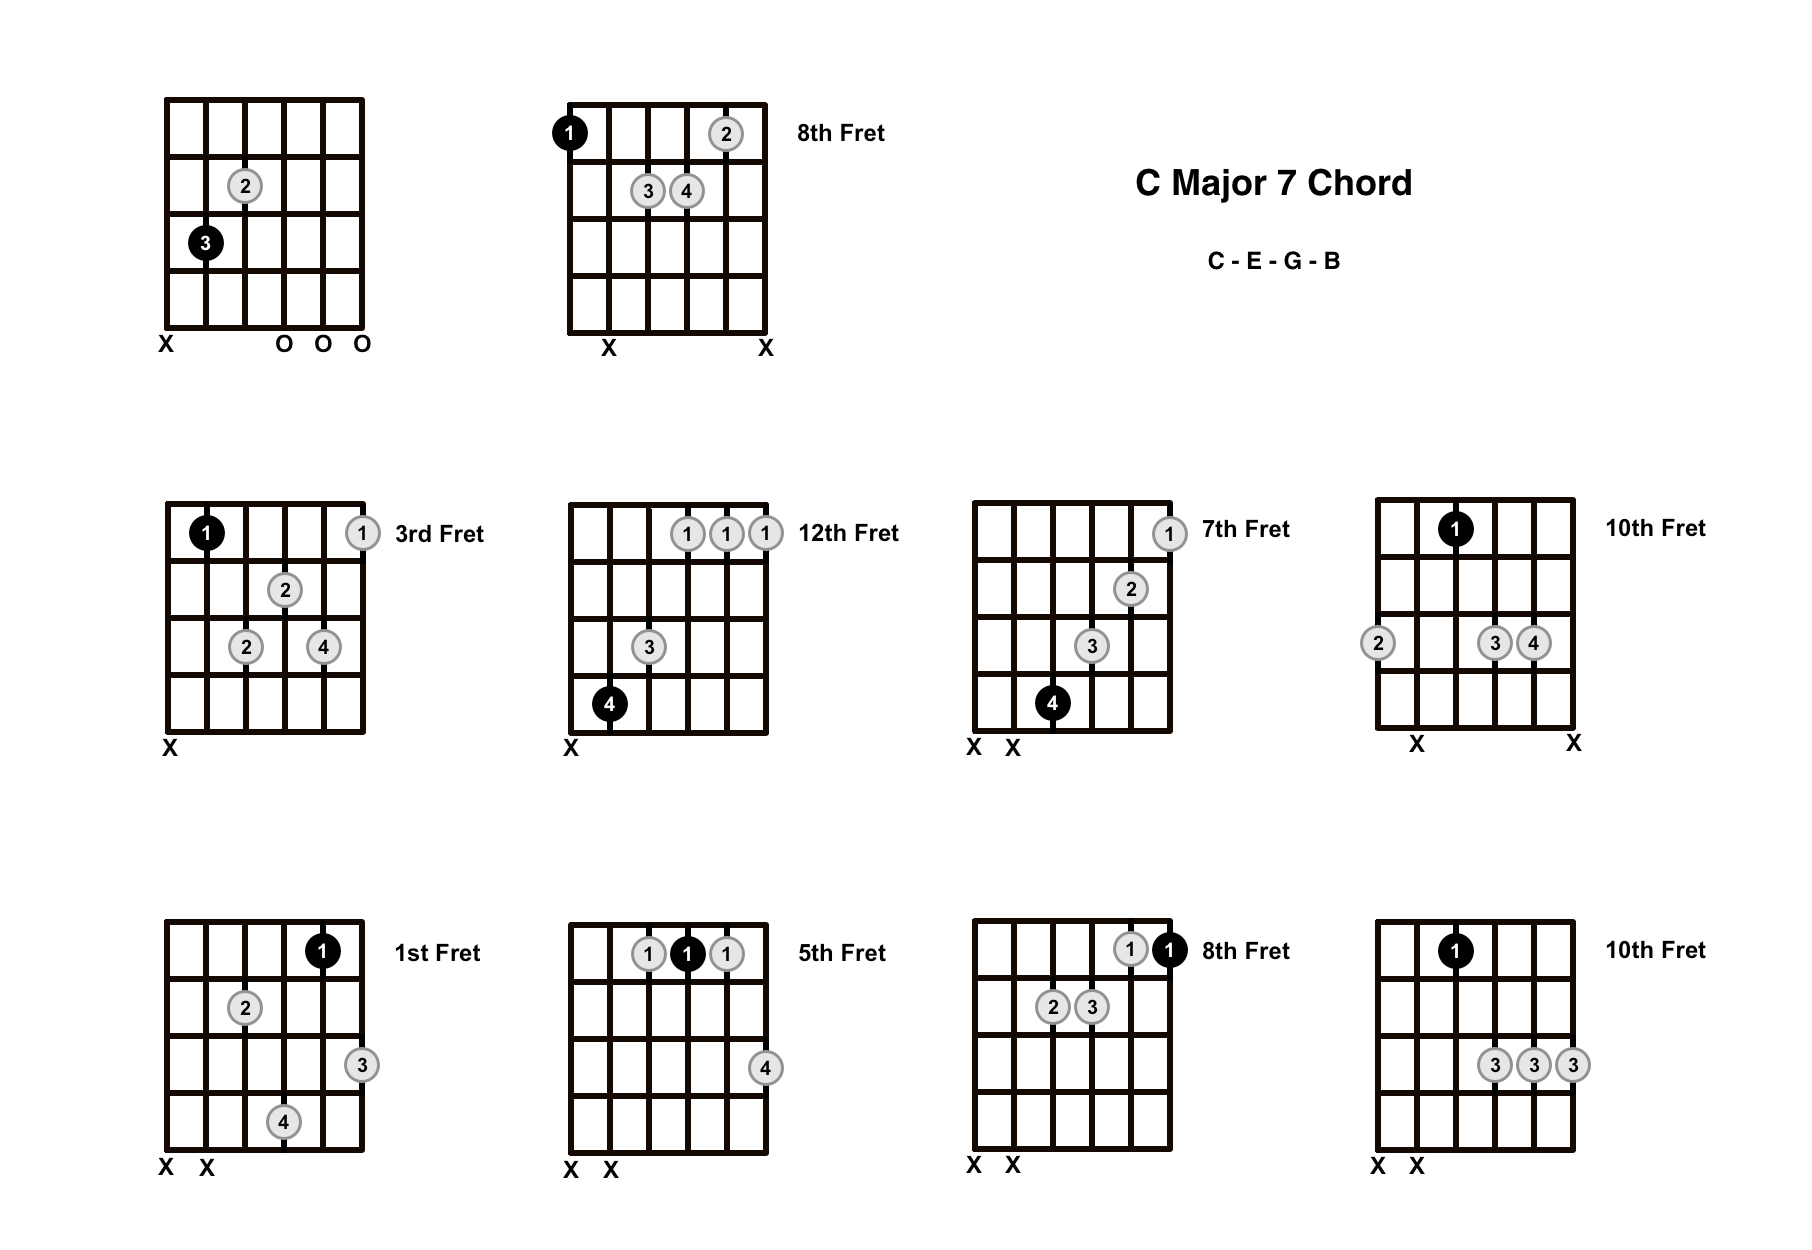 C Major 7 Chord On The Guitar (C Maj 7) – Diagrams, Finger Positions and Theory